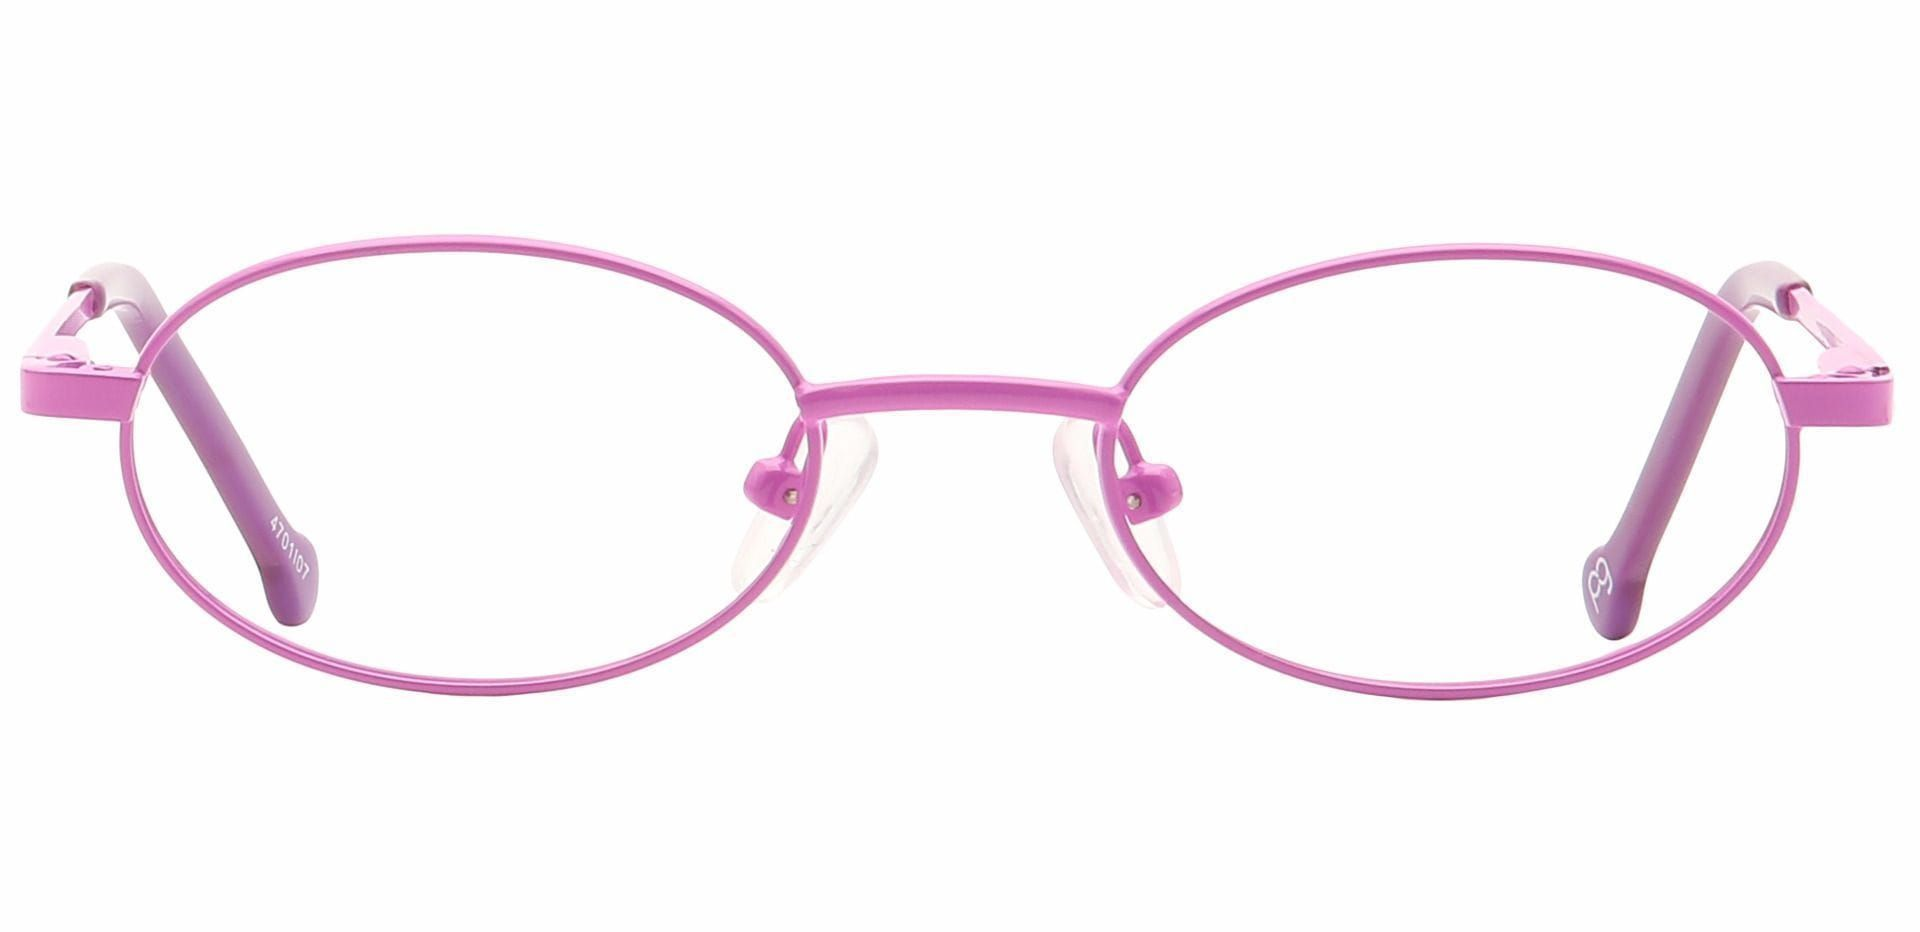 Lara Oval Blue Light Blocking Glasses - Pink